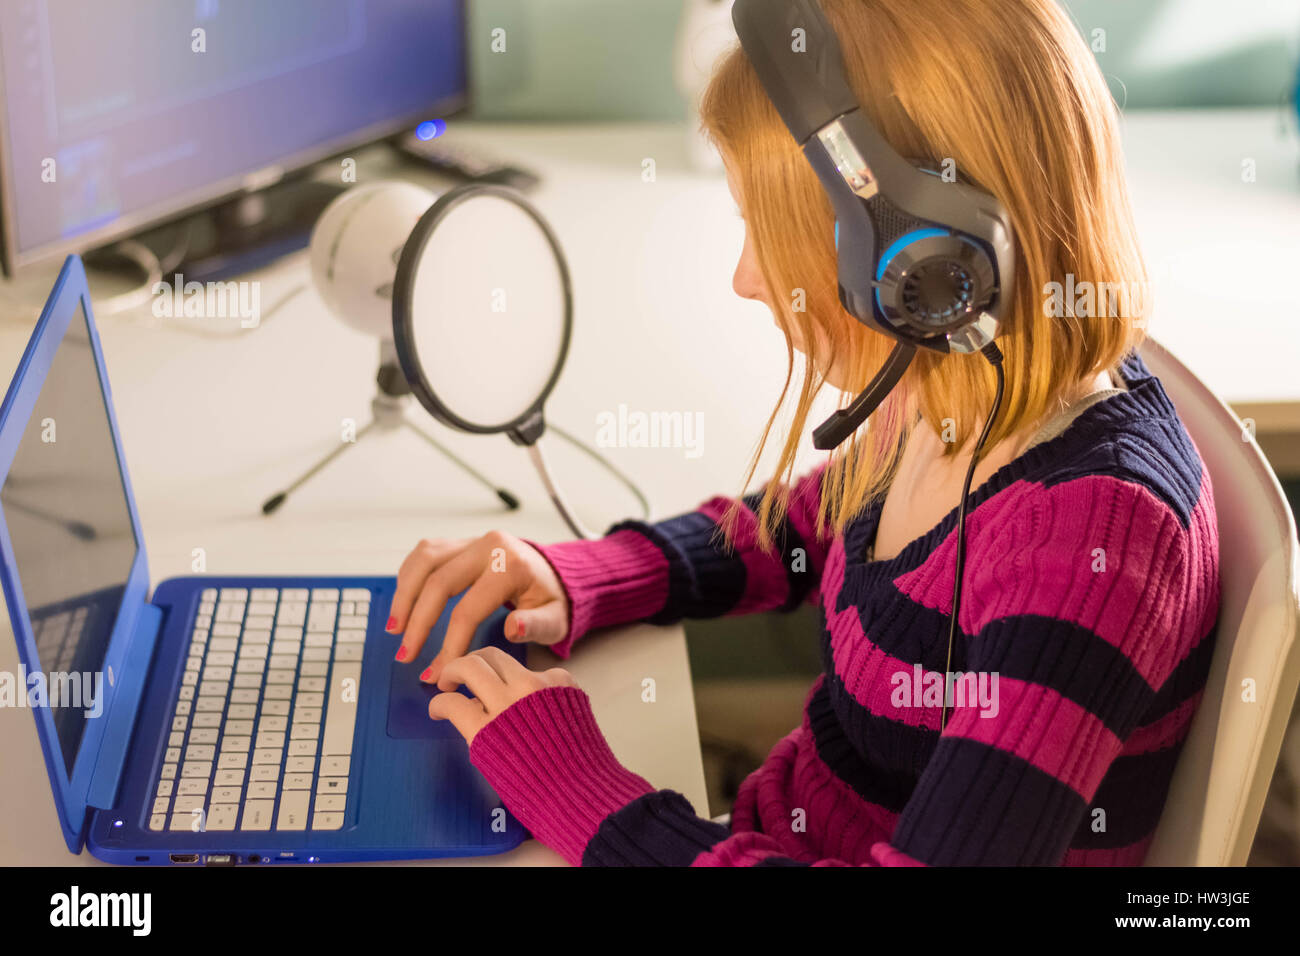 Tween playing on laptop with headphones on and microphone beside her. - Stock Image